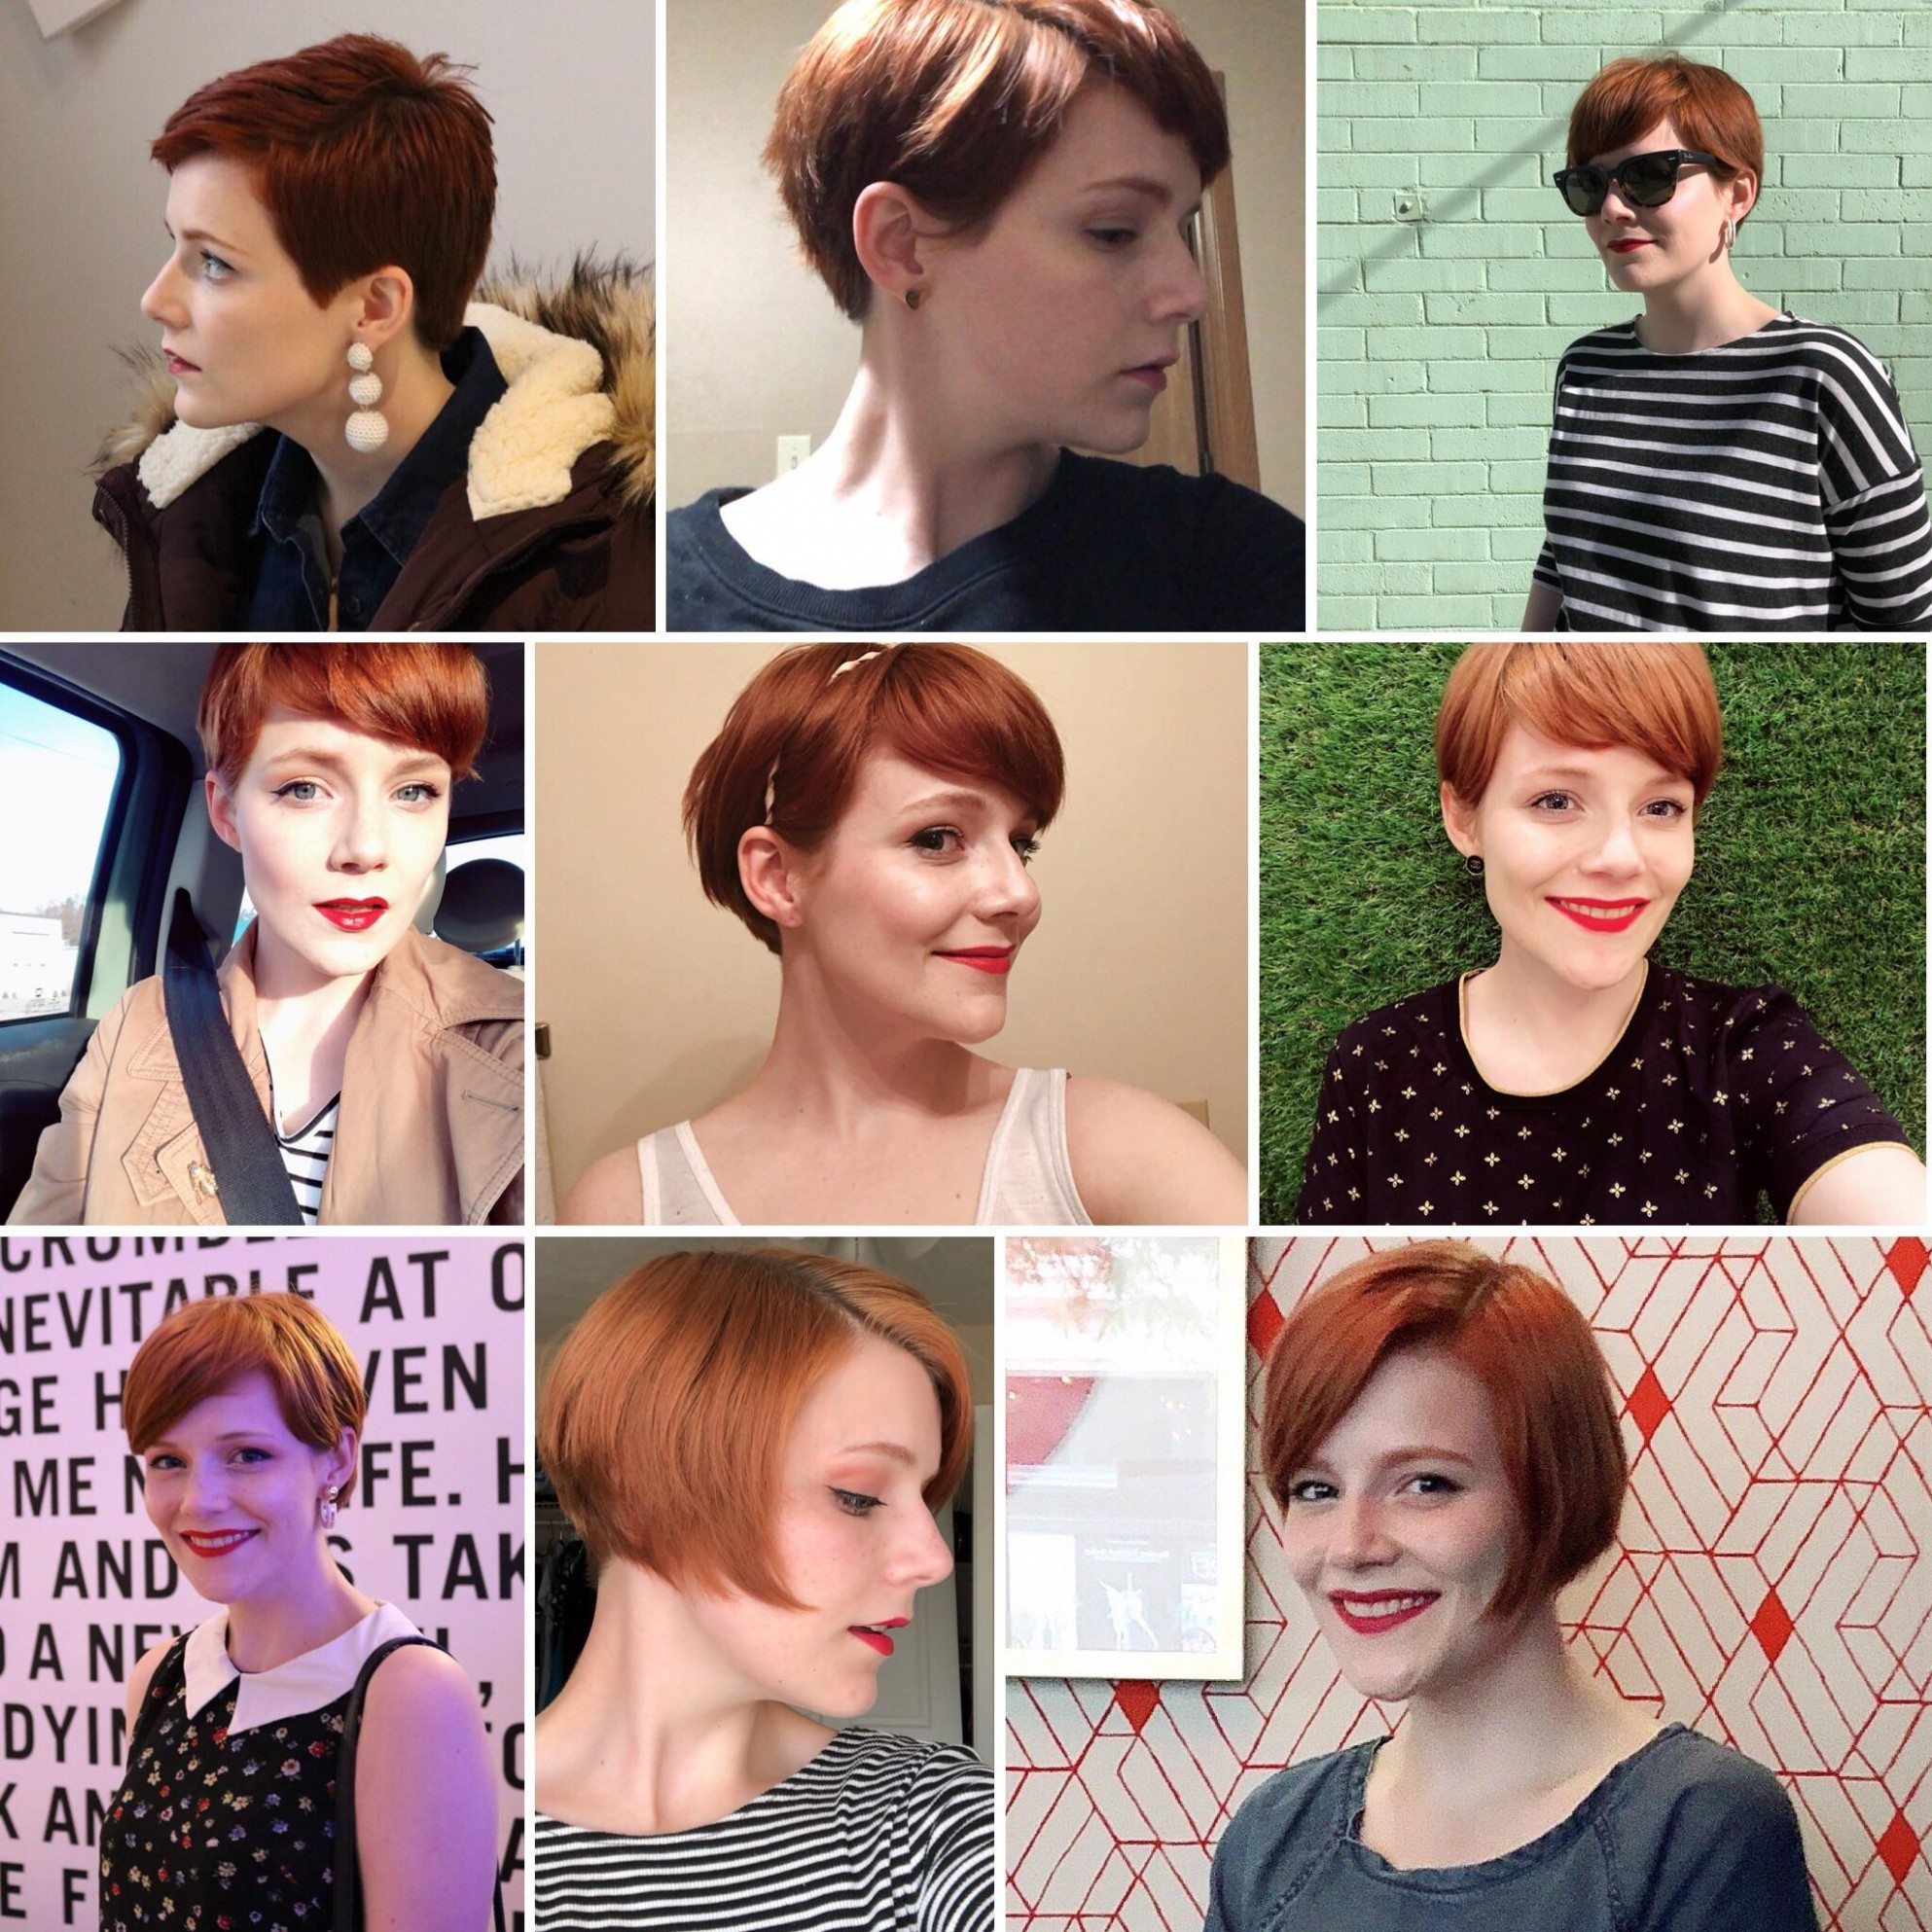 My SECOND Time Growing Out A Pixie Cut (when Will I Ever Learn Growing Out A Pixie Cut